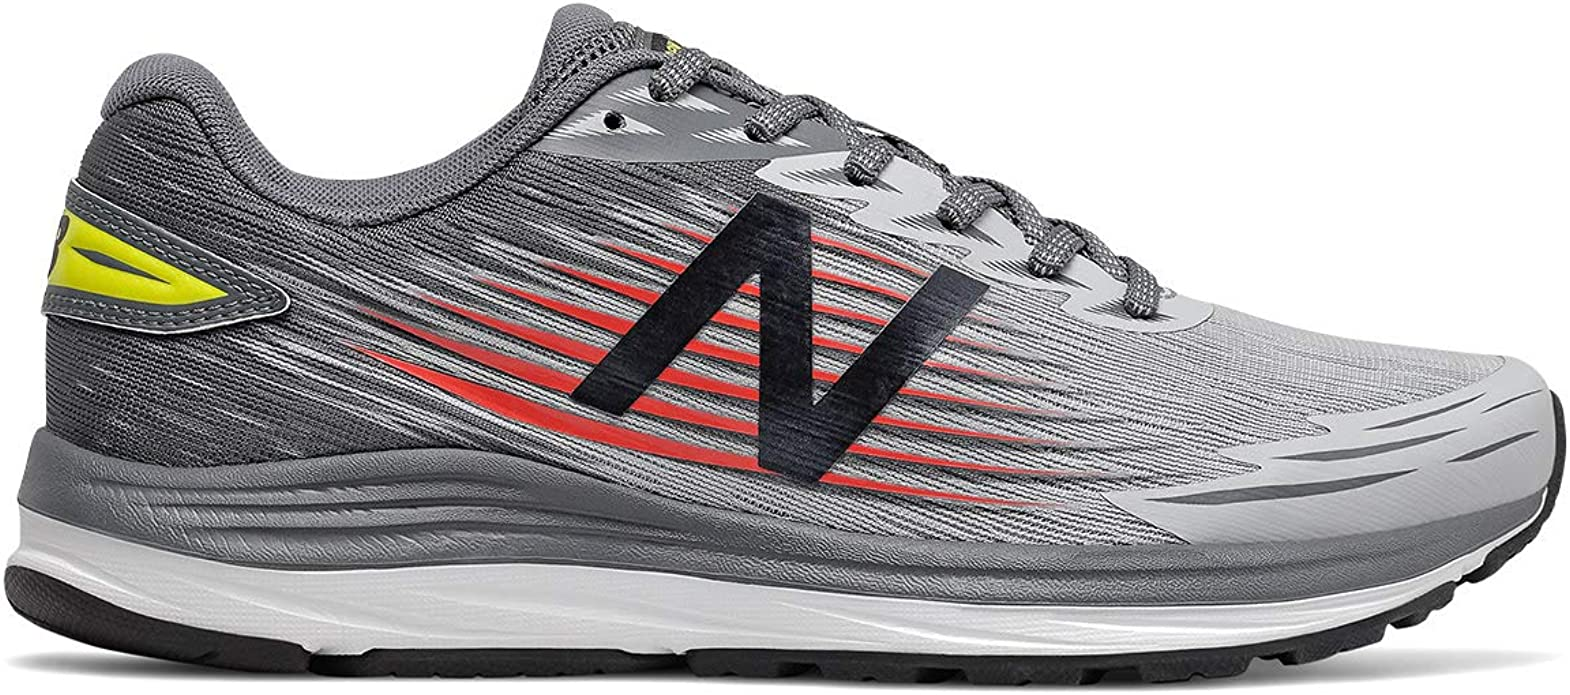 New Balance Synact Running Shoes - SS20